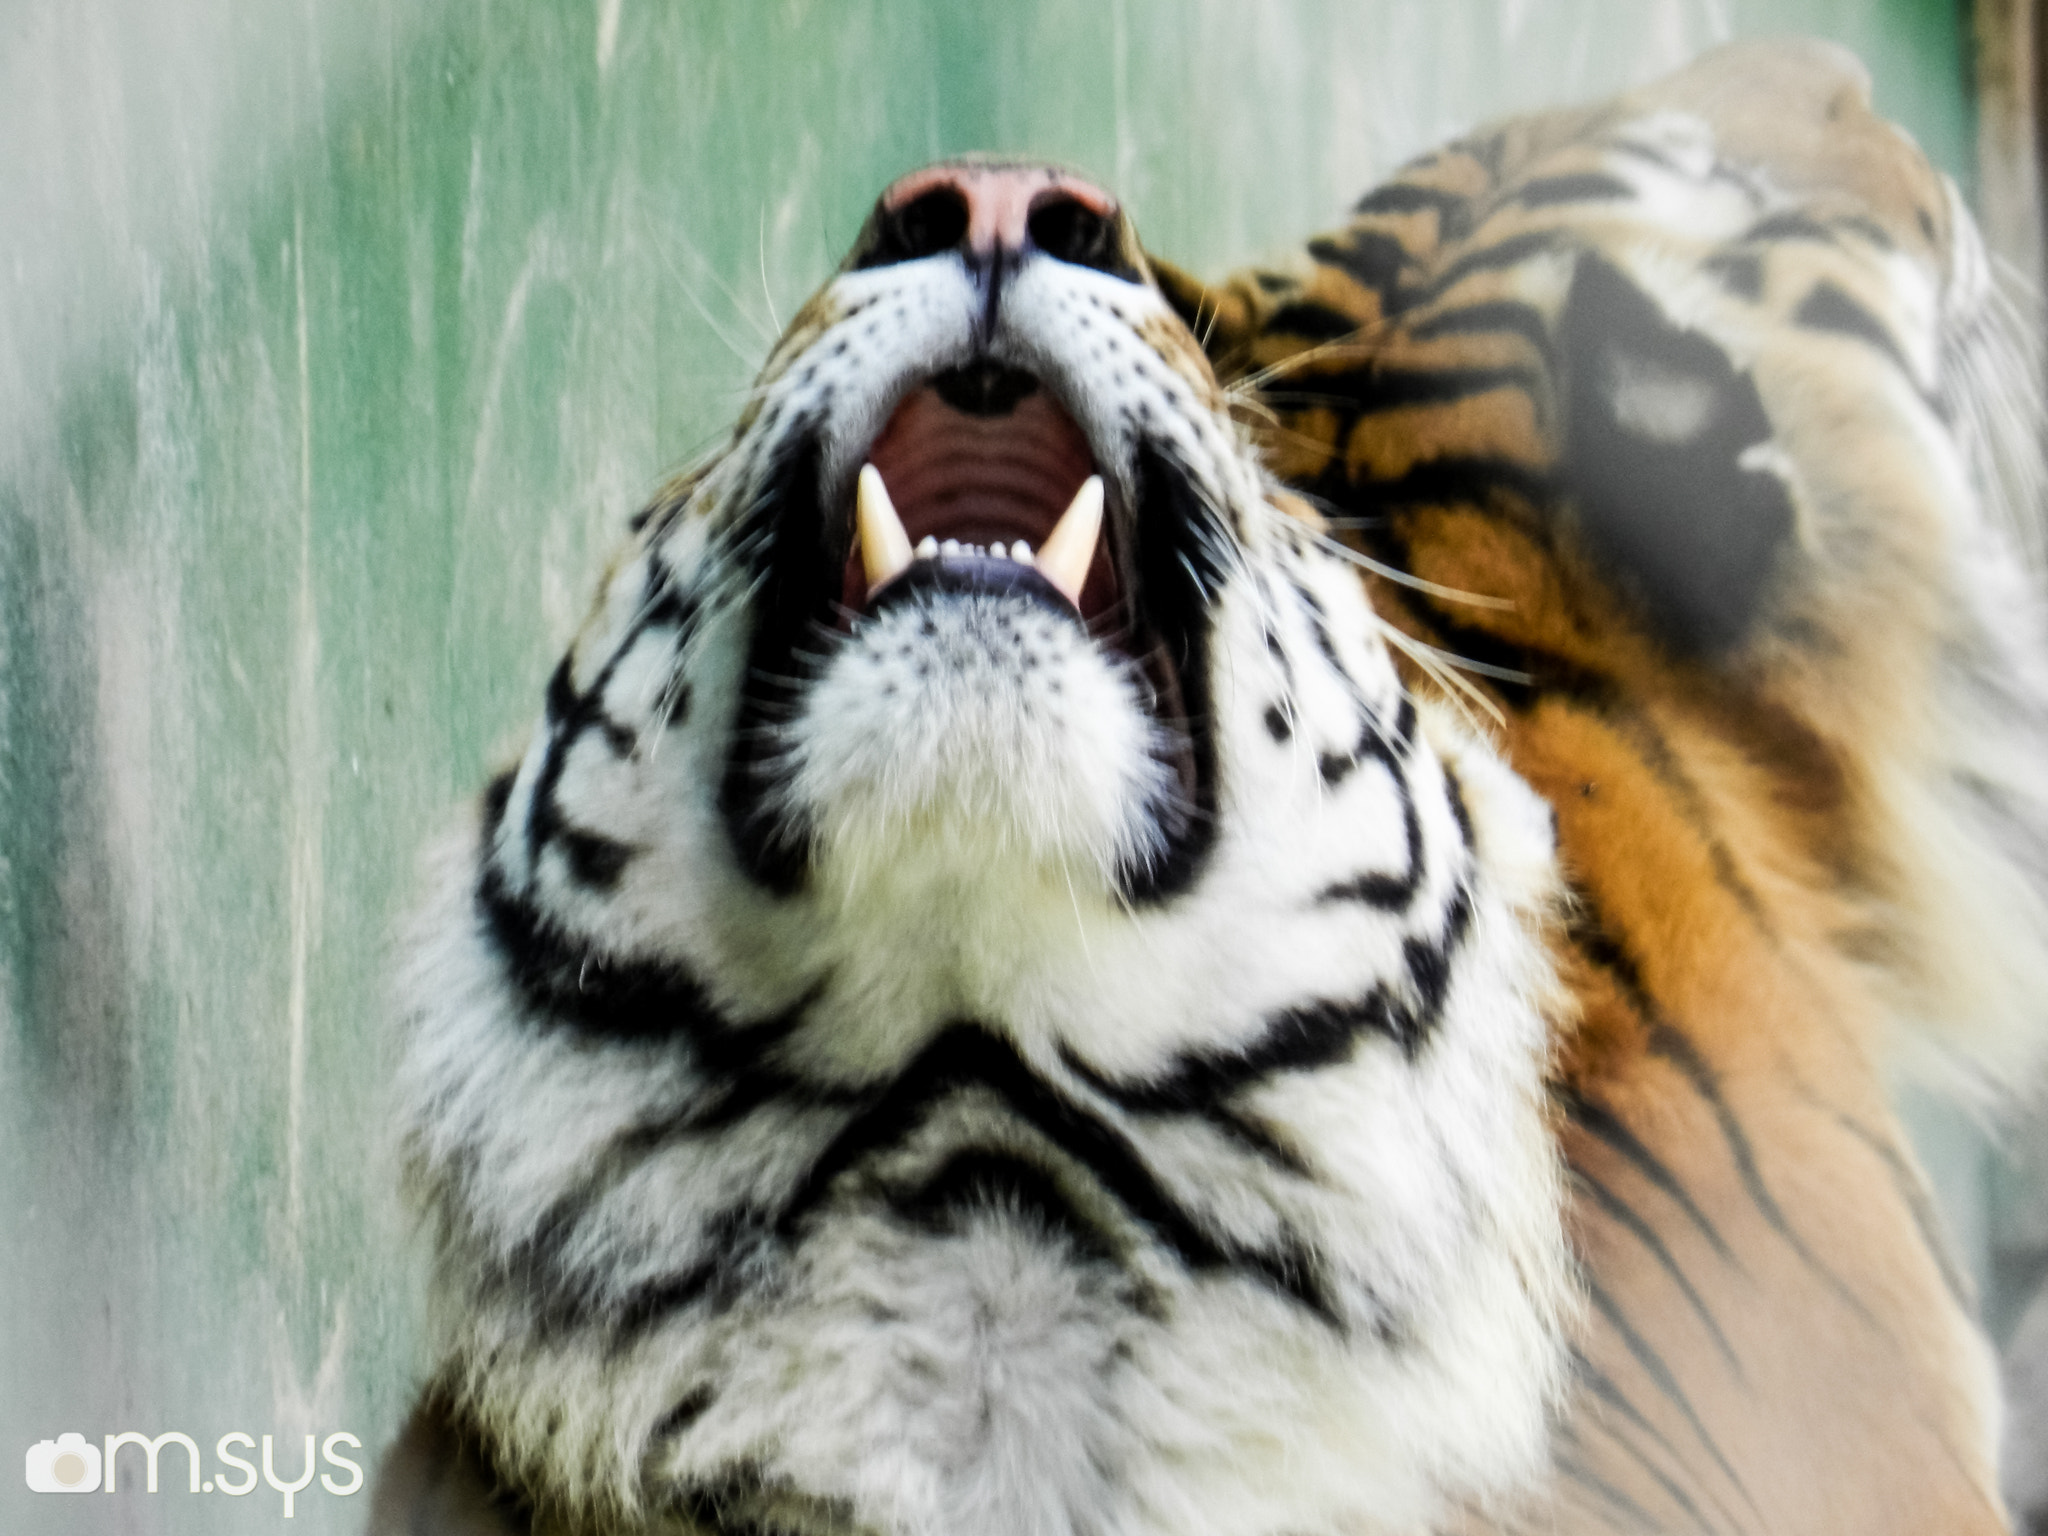 Photograph Tigre uivando by Mauro Clemente on 500px